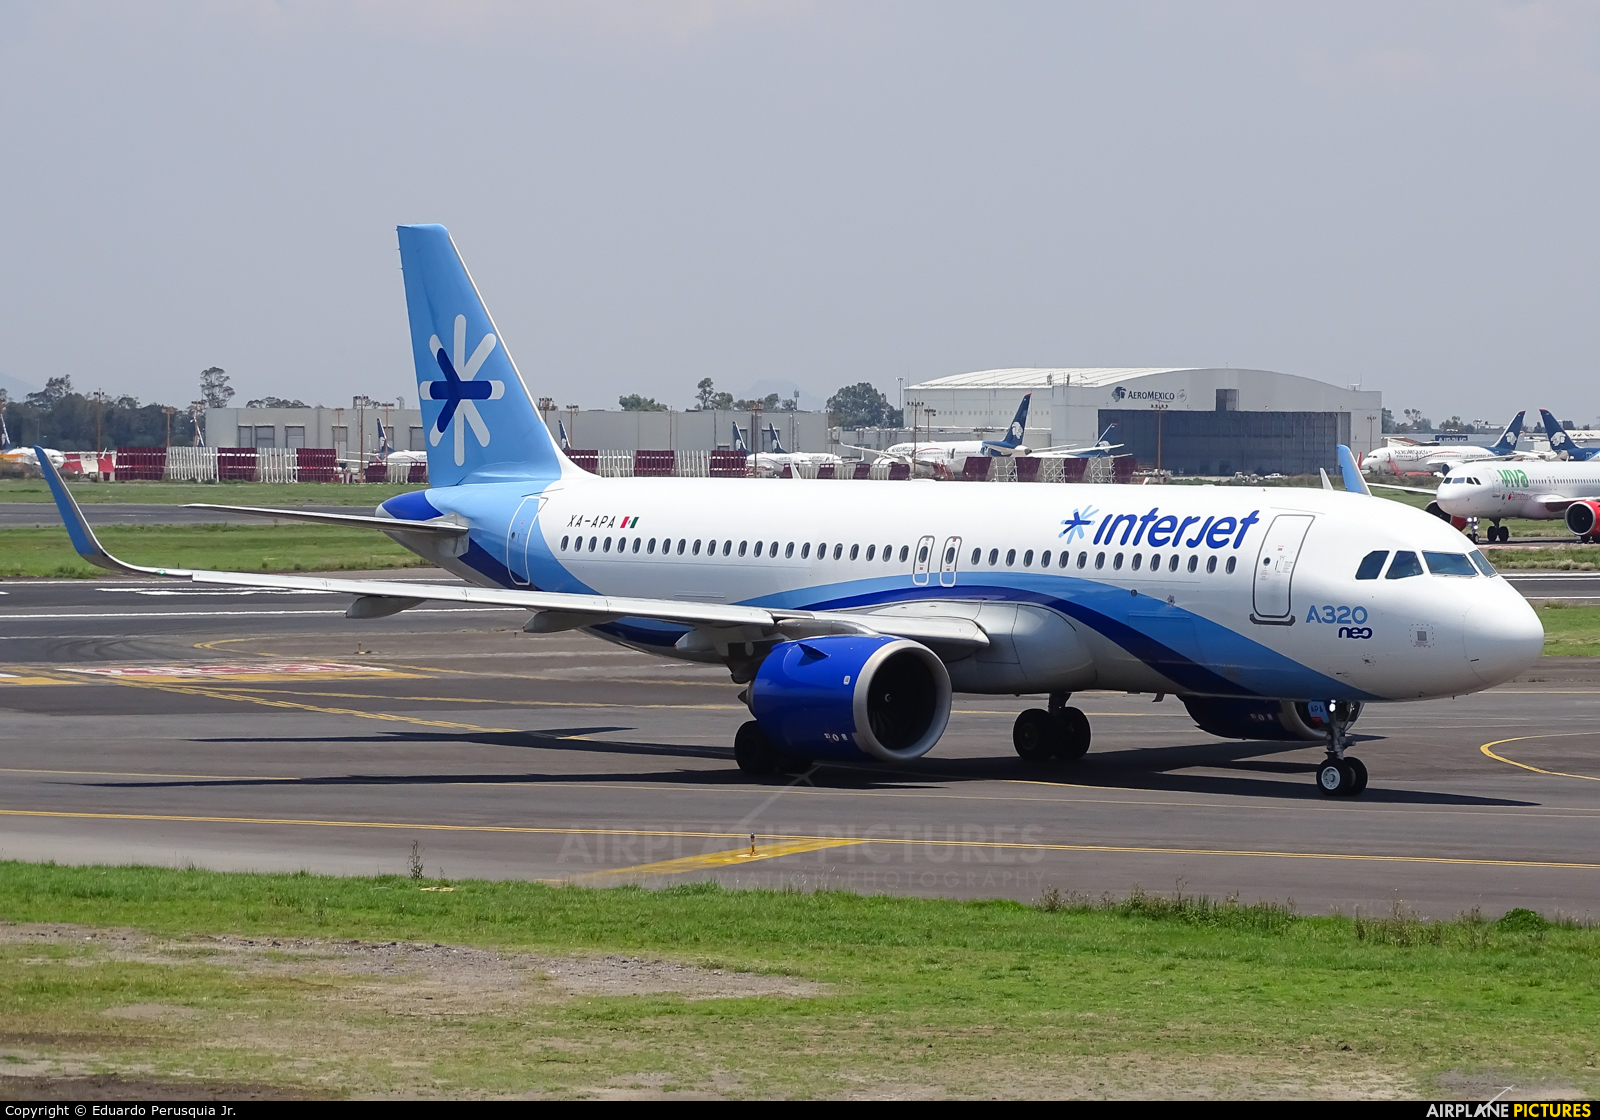 Interjet XA-APA aircraft at Mexico City - Licenciado Benito Juarez Intl